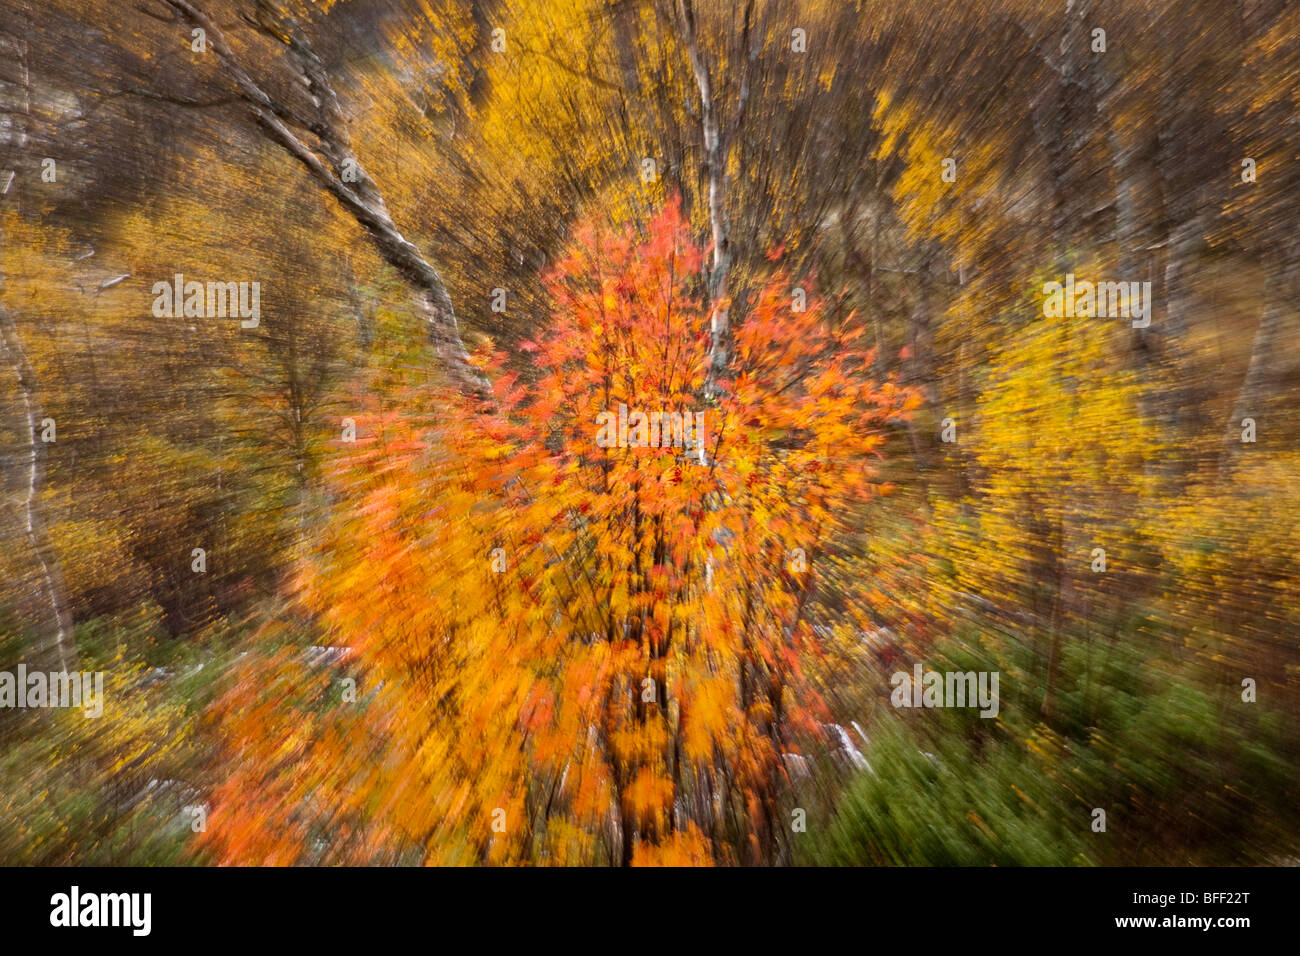 Fjell and birch forest in autumn Jämtland Sweden - Stock Image